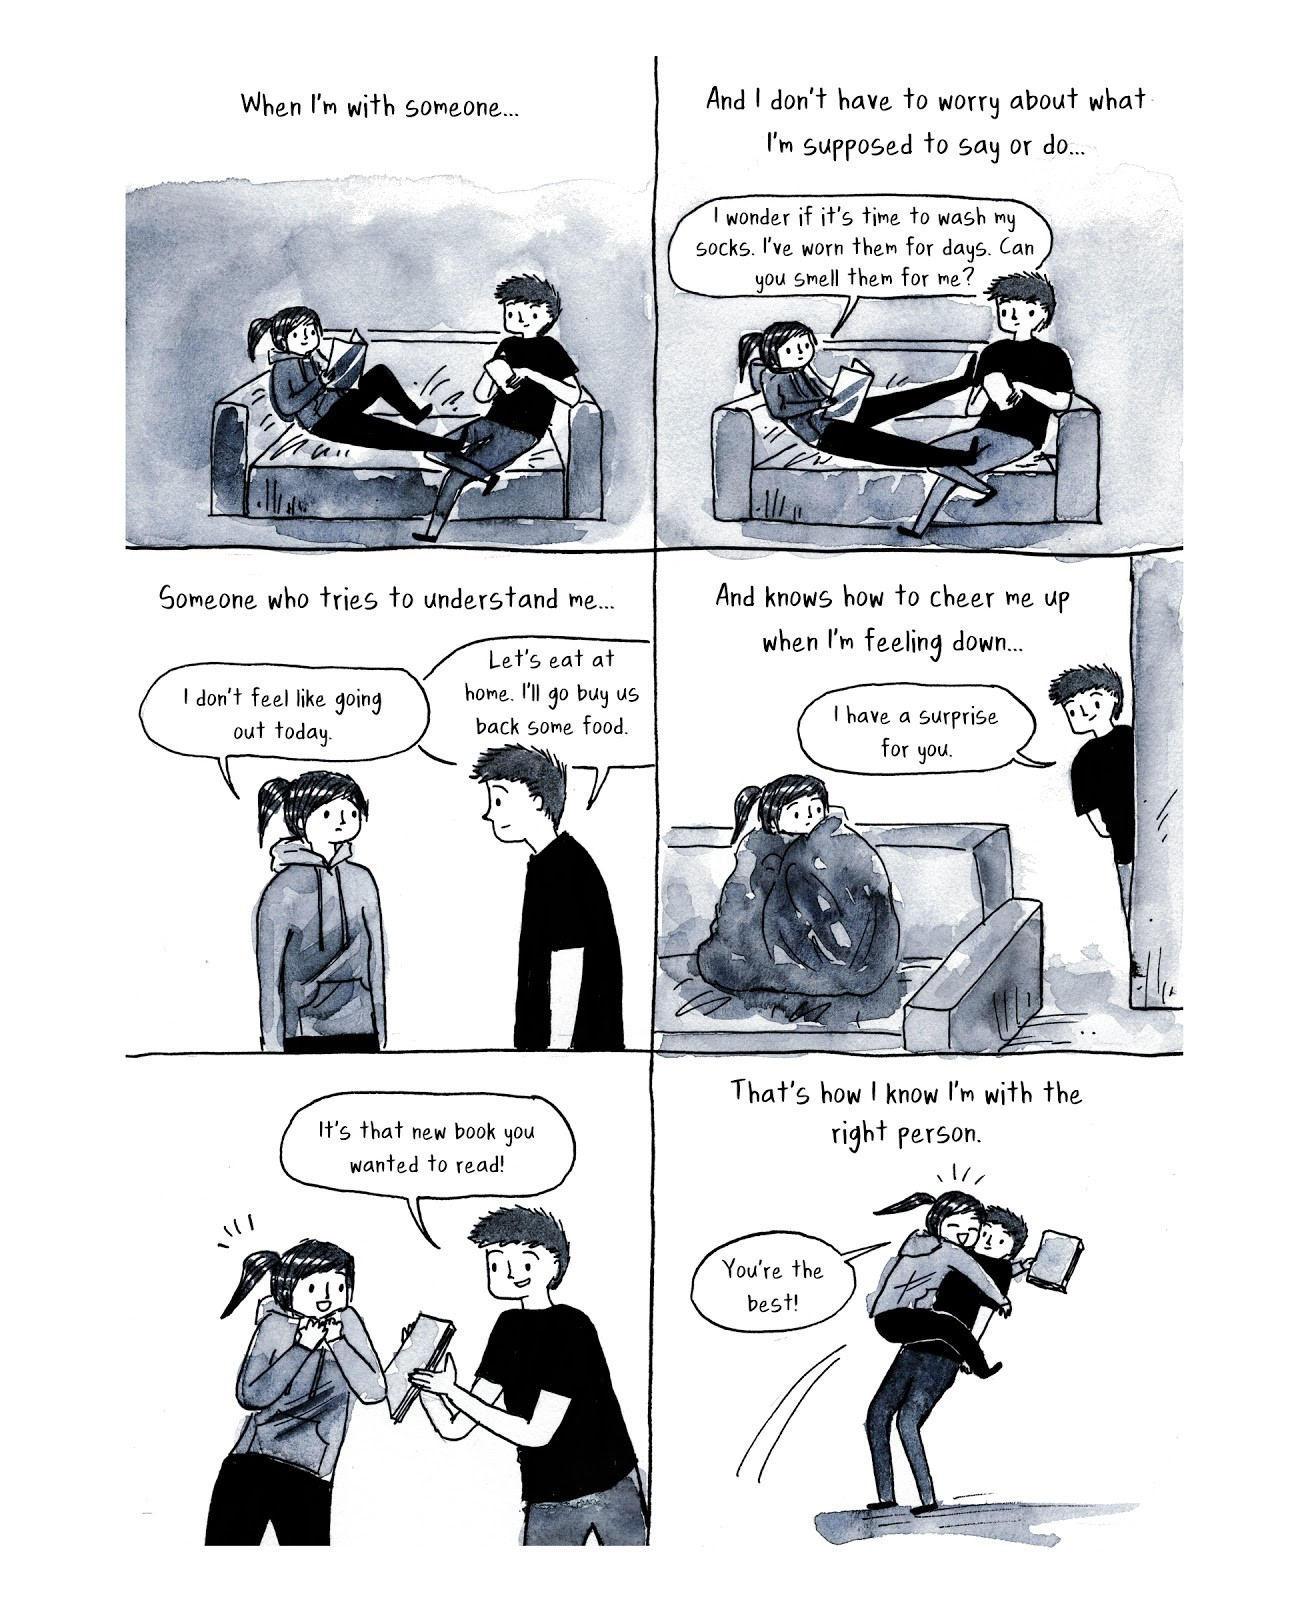 a Debbie Tung comic about reading a new book